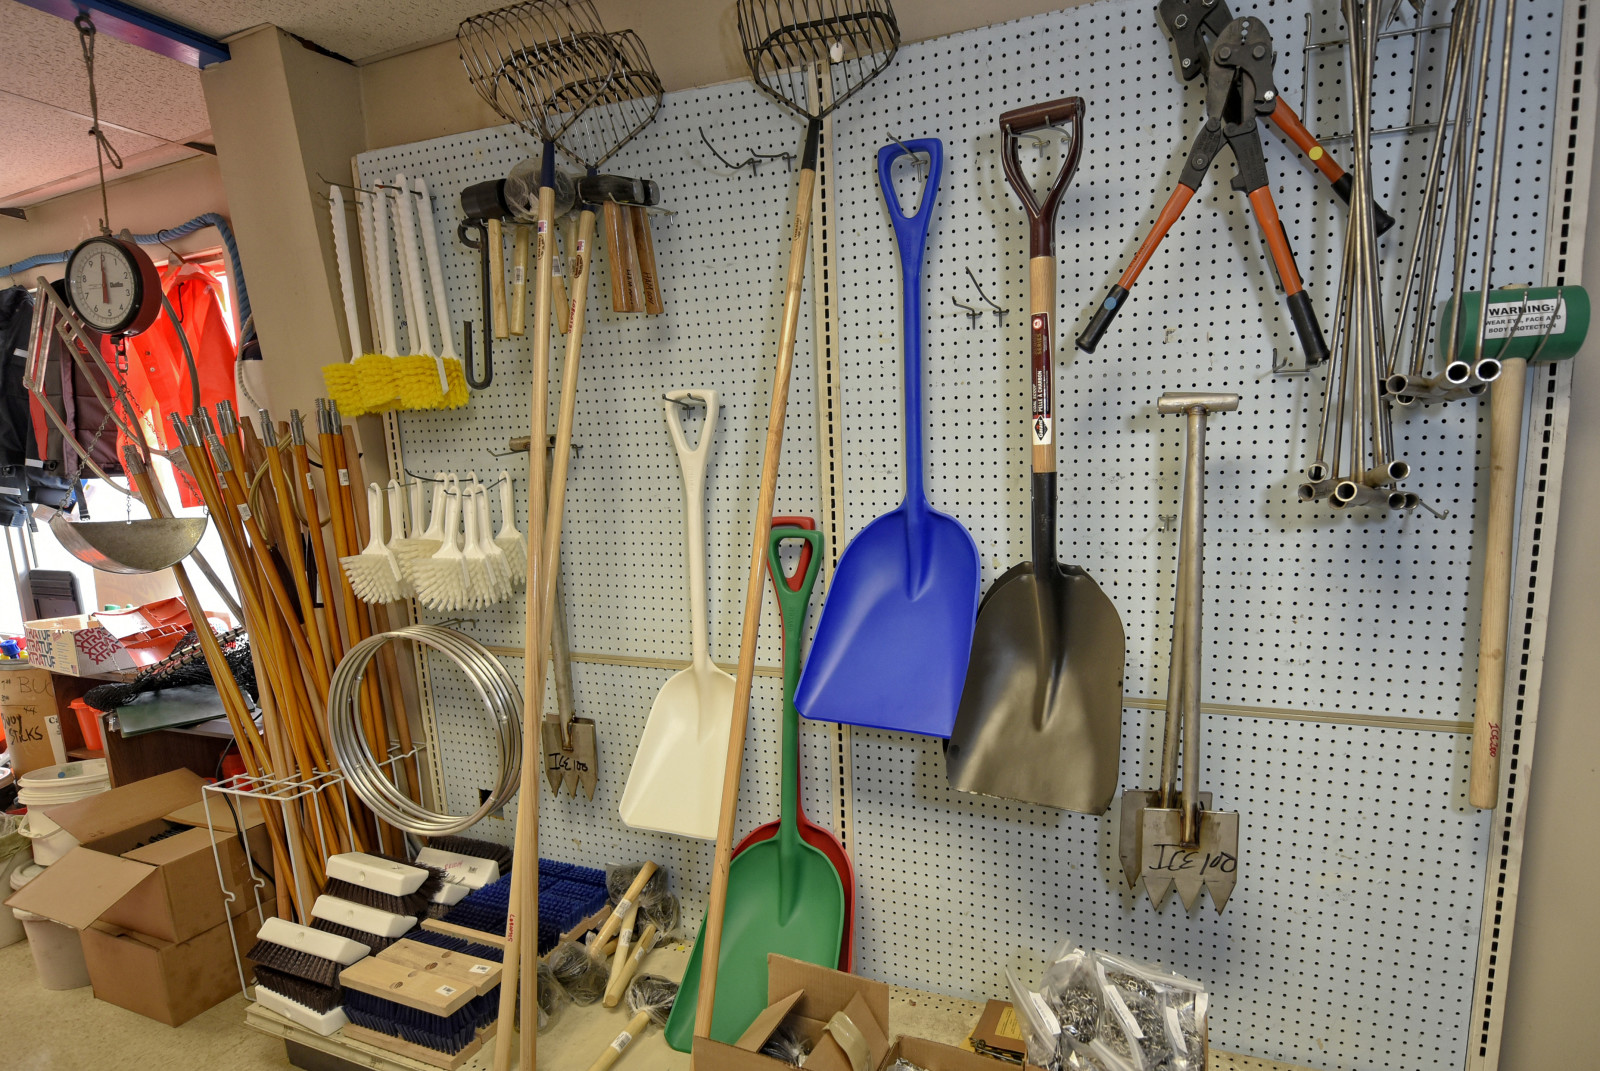 Fishing supplies and tools, Hercules Marine fishing supply company